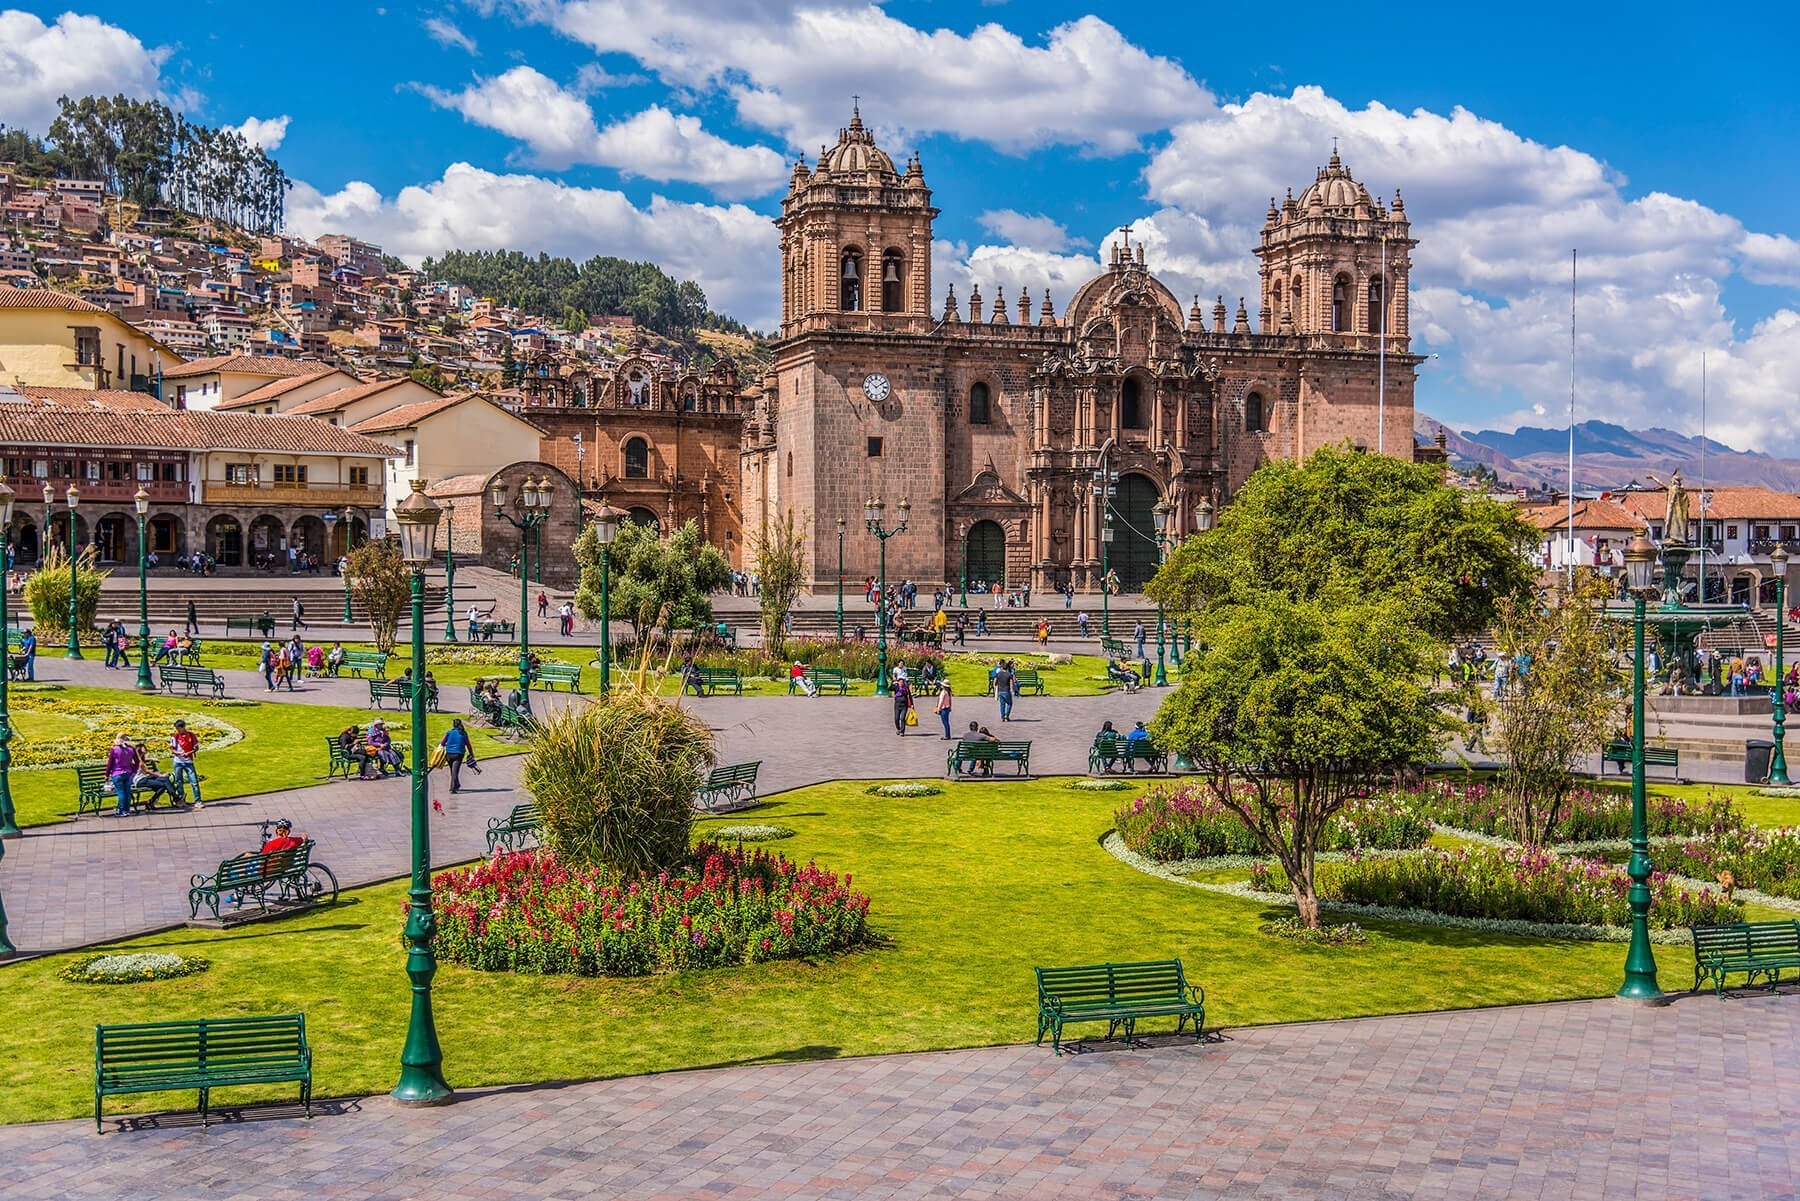 Main square in Cuzco with the impressive cathedral